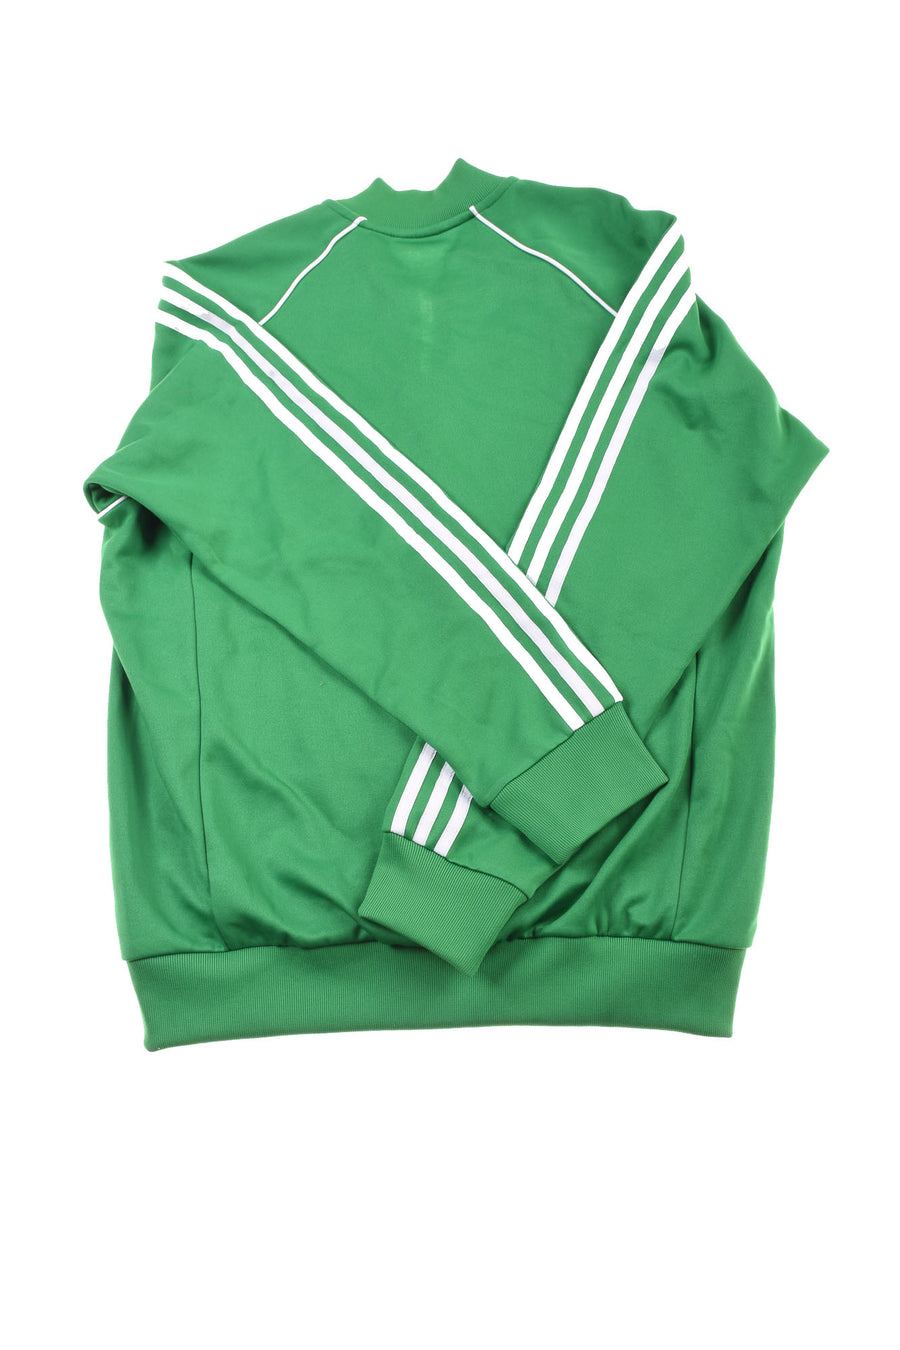 USED Adidas Women's Jacket Large Green